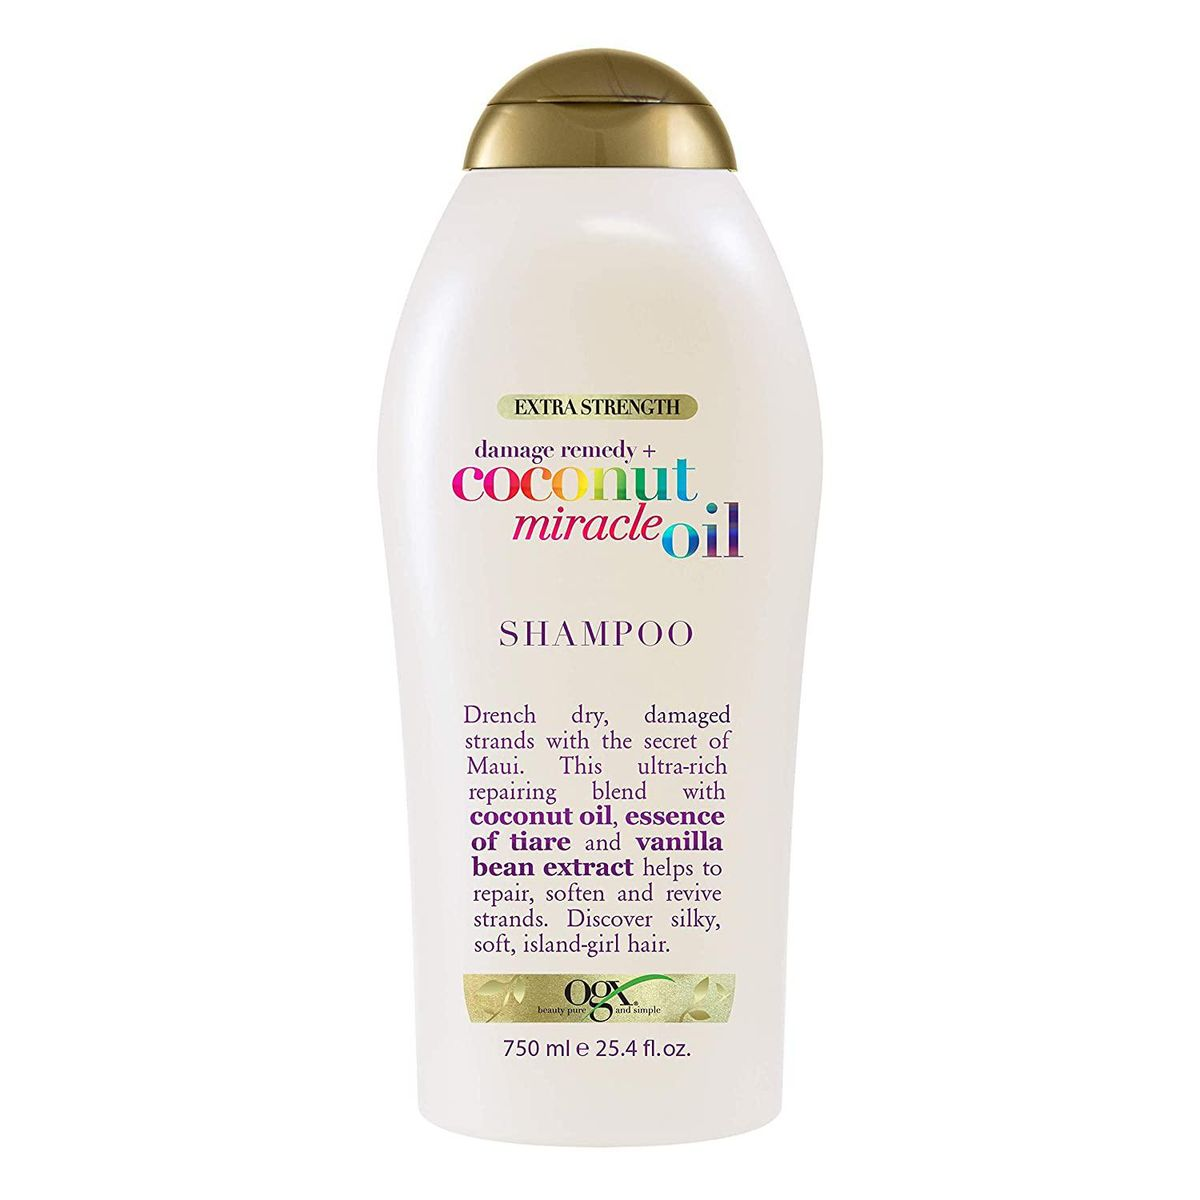 ogx extra strength damage remedy and coconut miracle oil shampoo